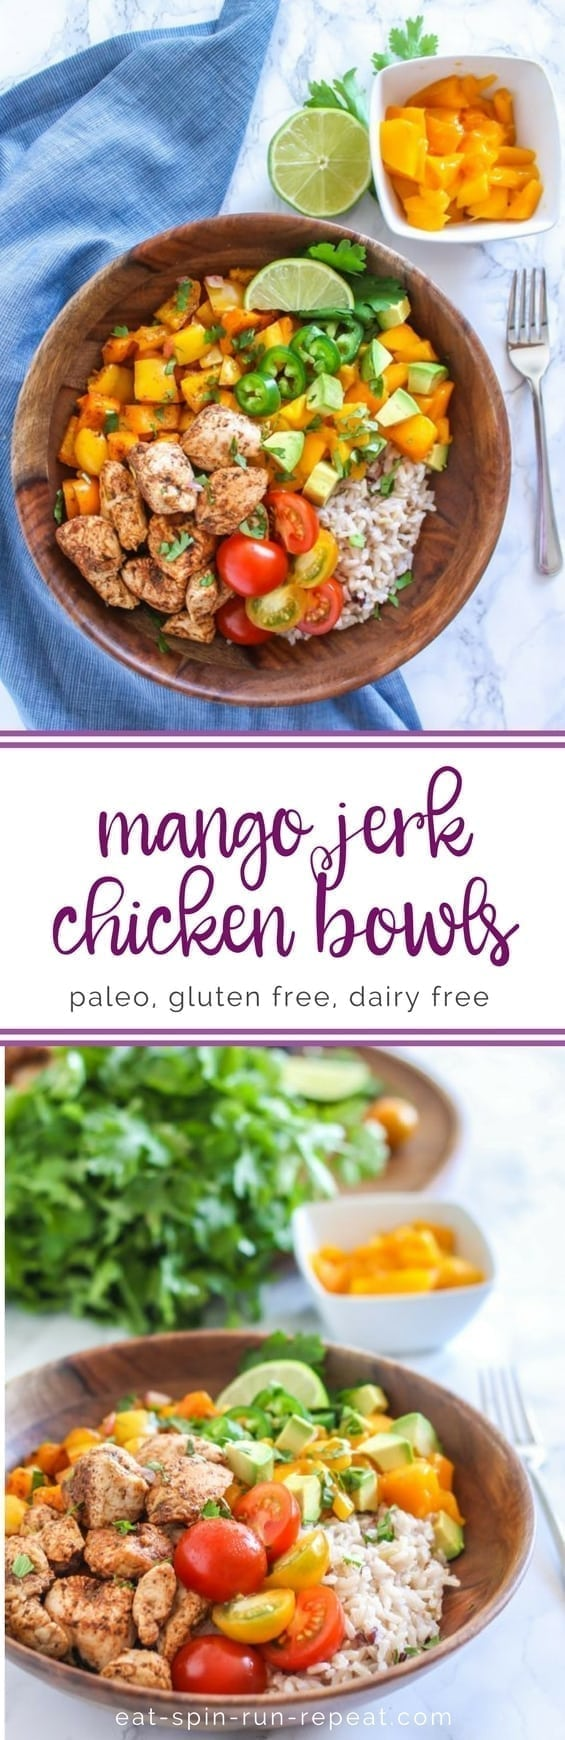 Zesty, spicy, sweet and super fresh, these Mango Jerk Chicken Bowls might soon become a healthy dinner time favourite. Serve with rice, or cauliflower rice to make it paleo-friendly.    Eat Spin Run Repeat